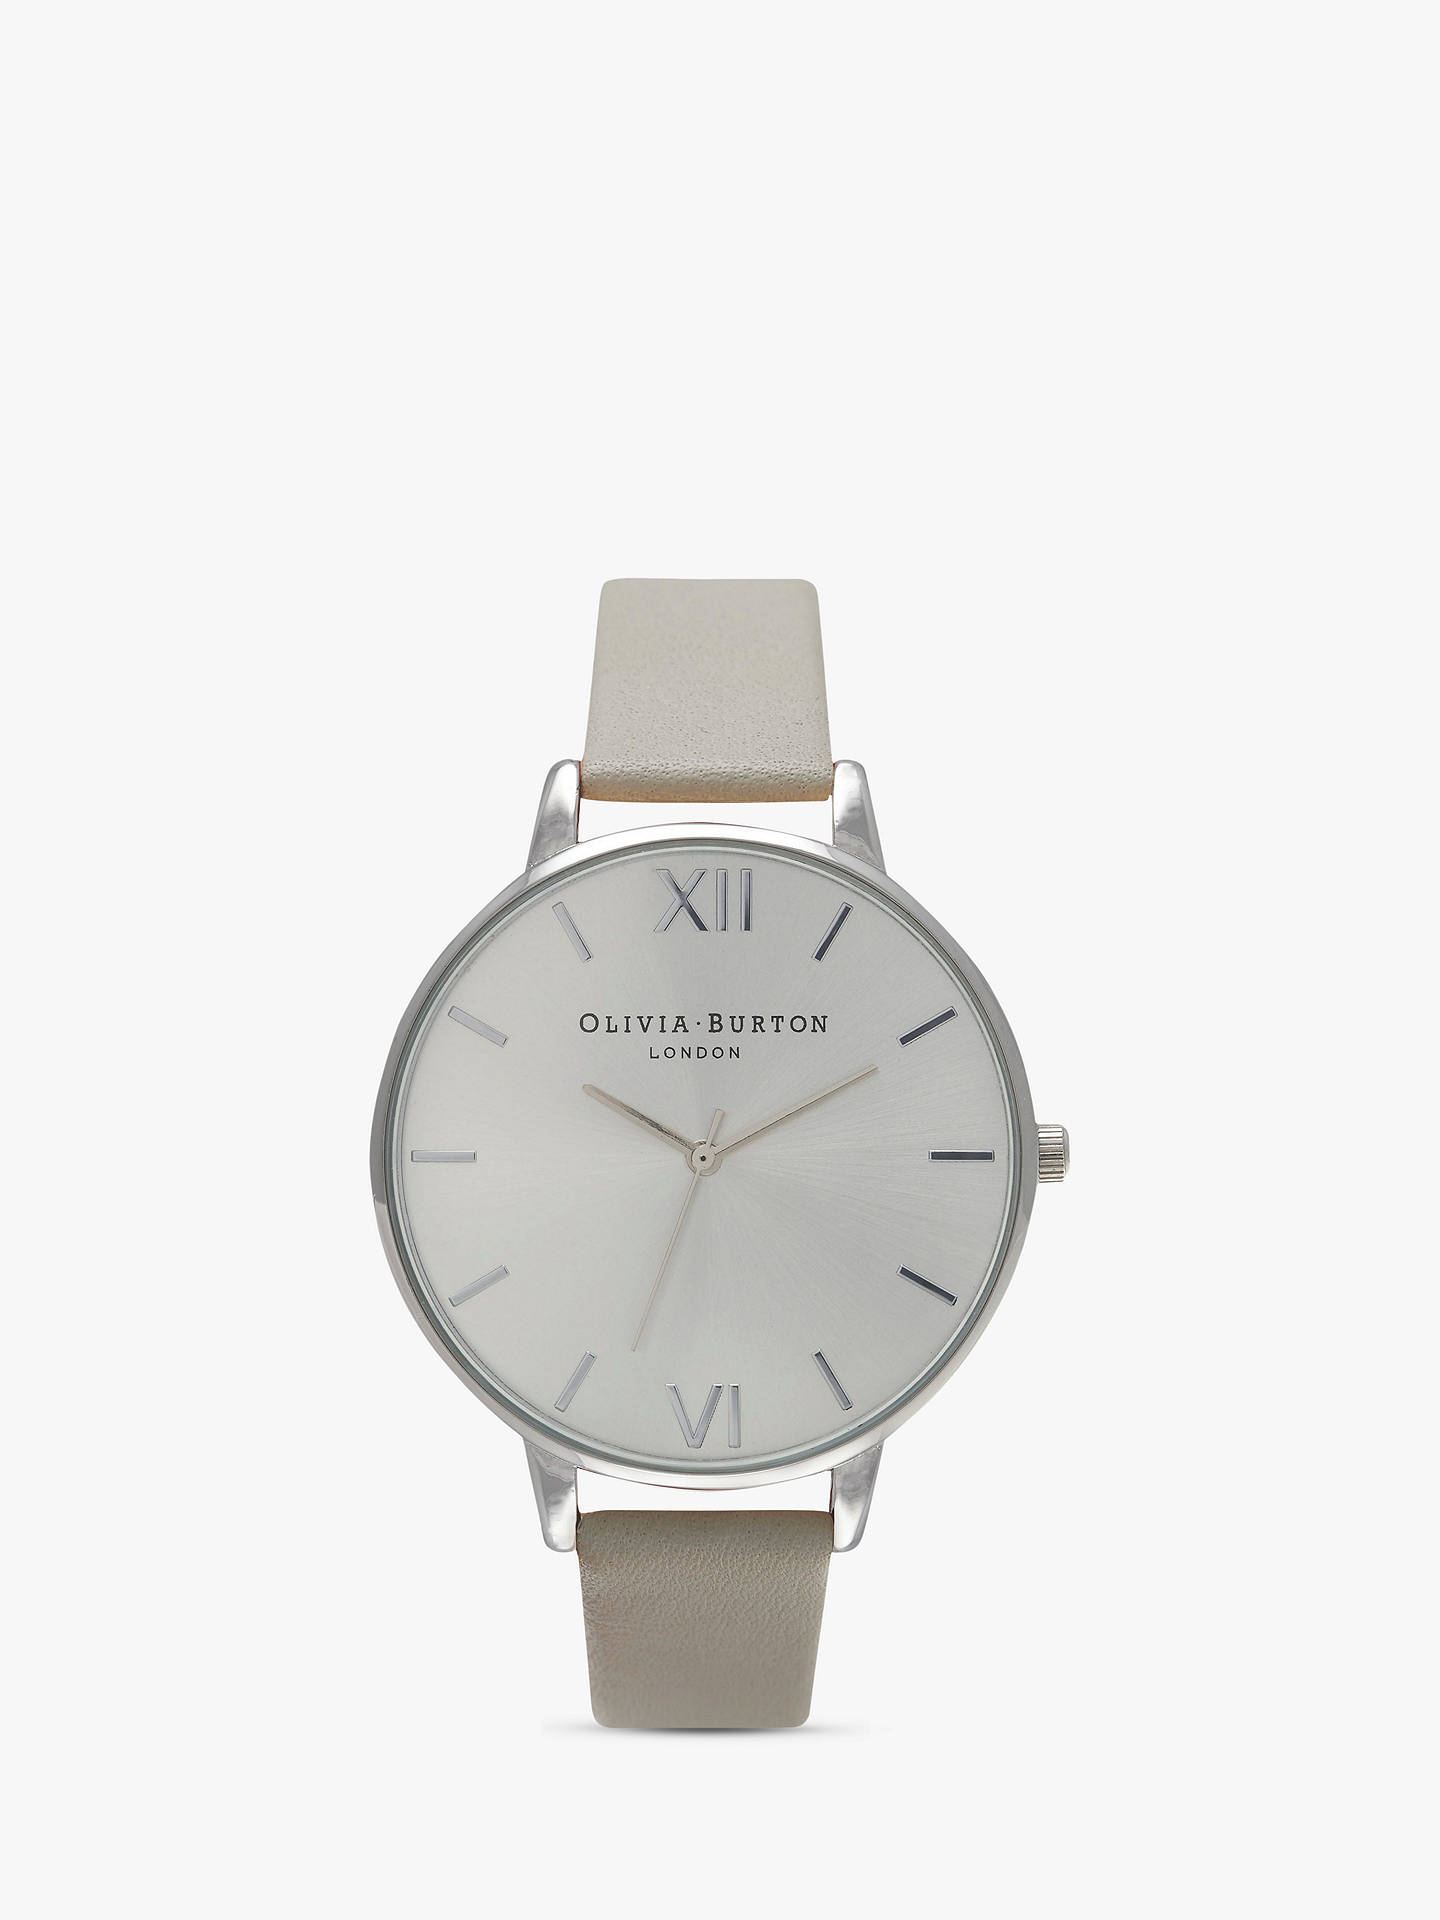 590b81c82 Buy Olivia Burton OB15BD57 Women's Big Dial Leather Strap Watch, Grey/Silver  Online at ...